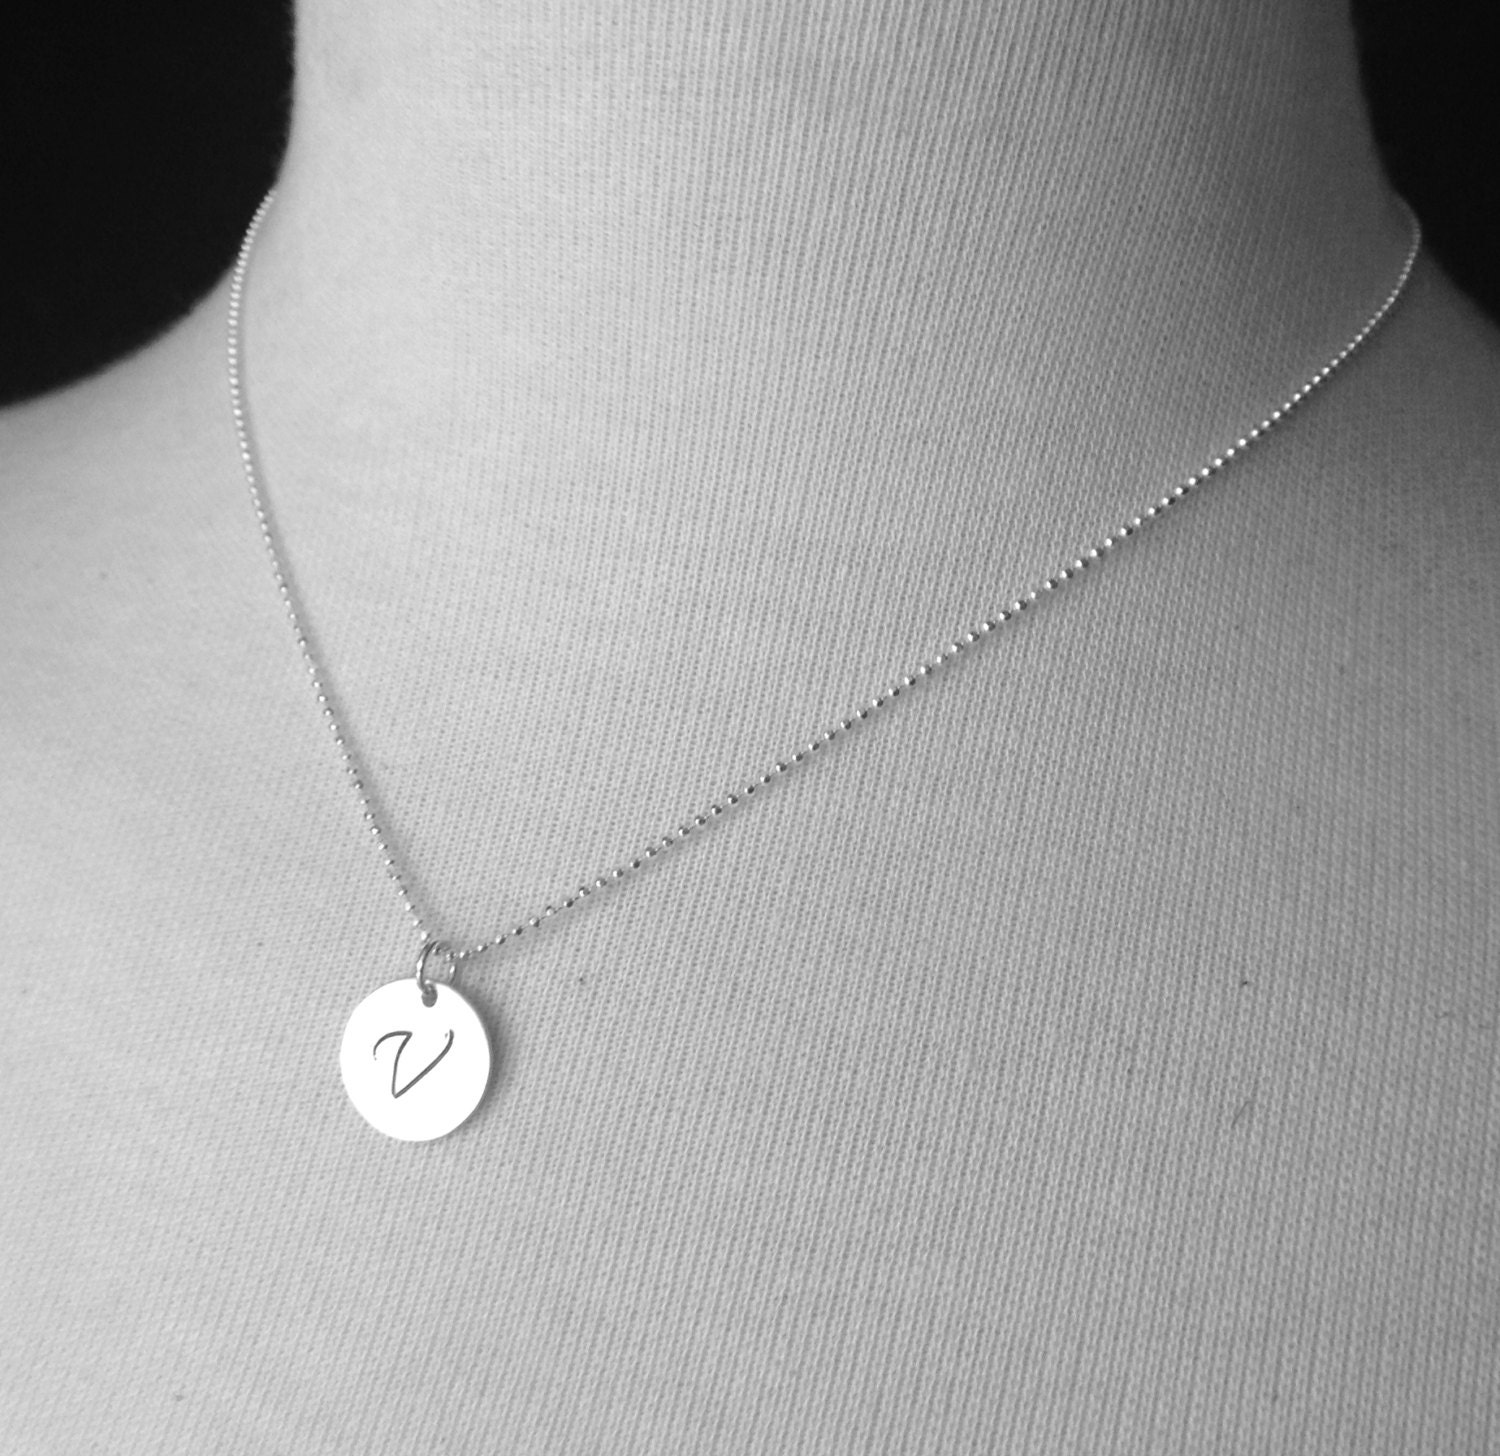 Large initial necklace sterling silver initial necklace zoom aloadofball Images